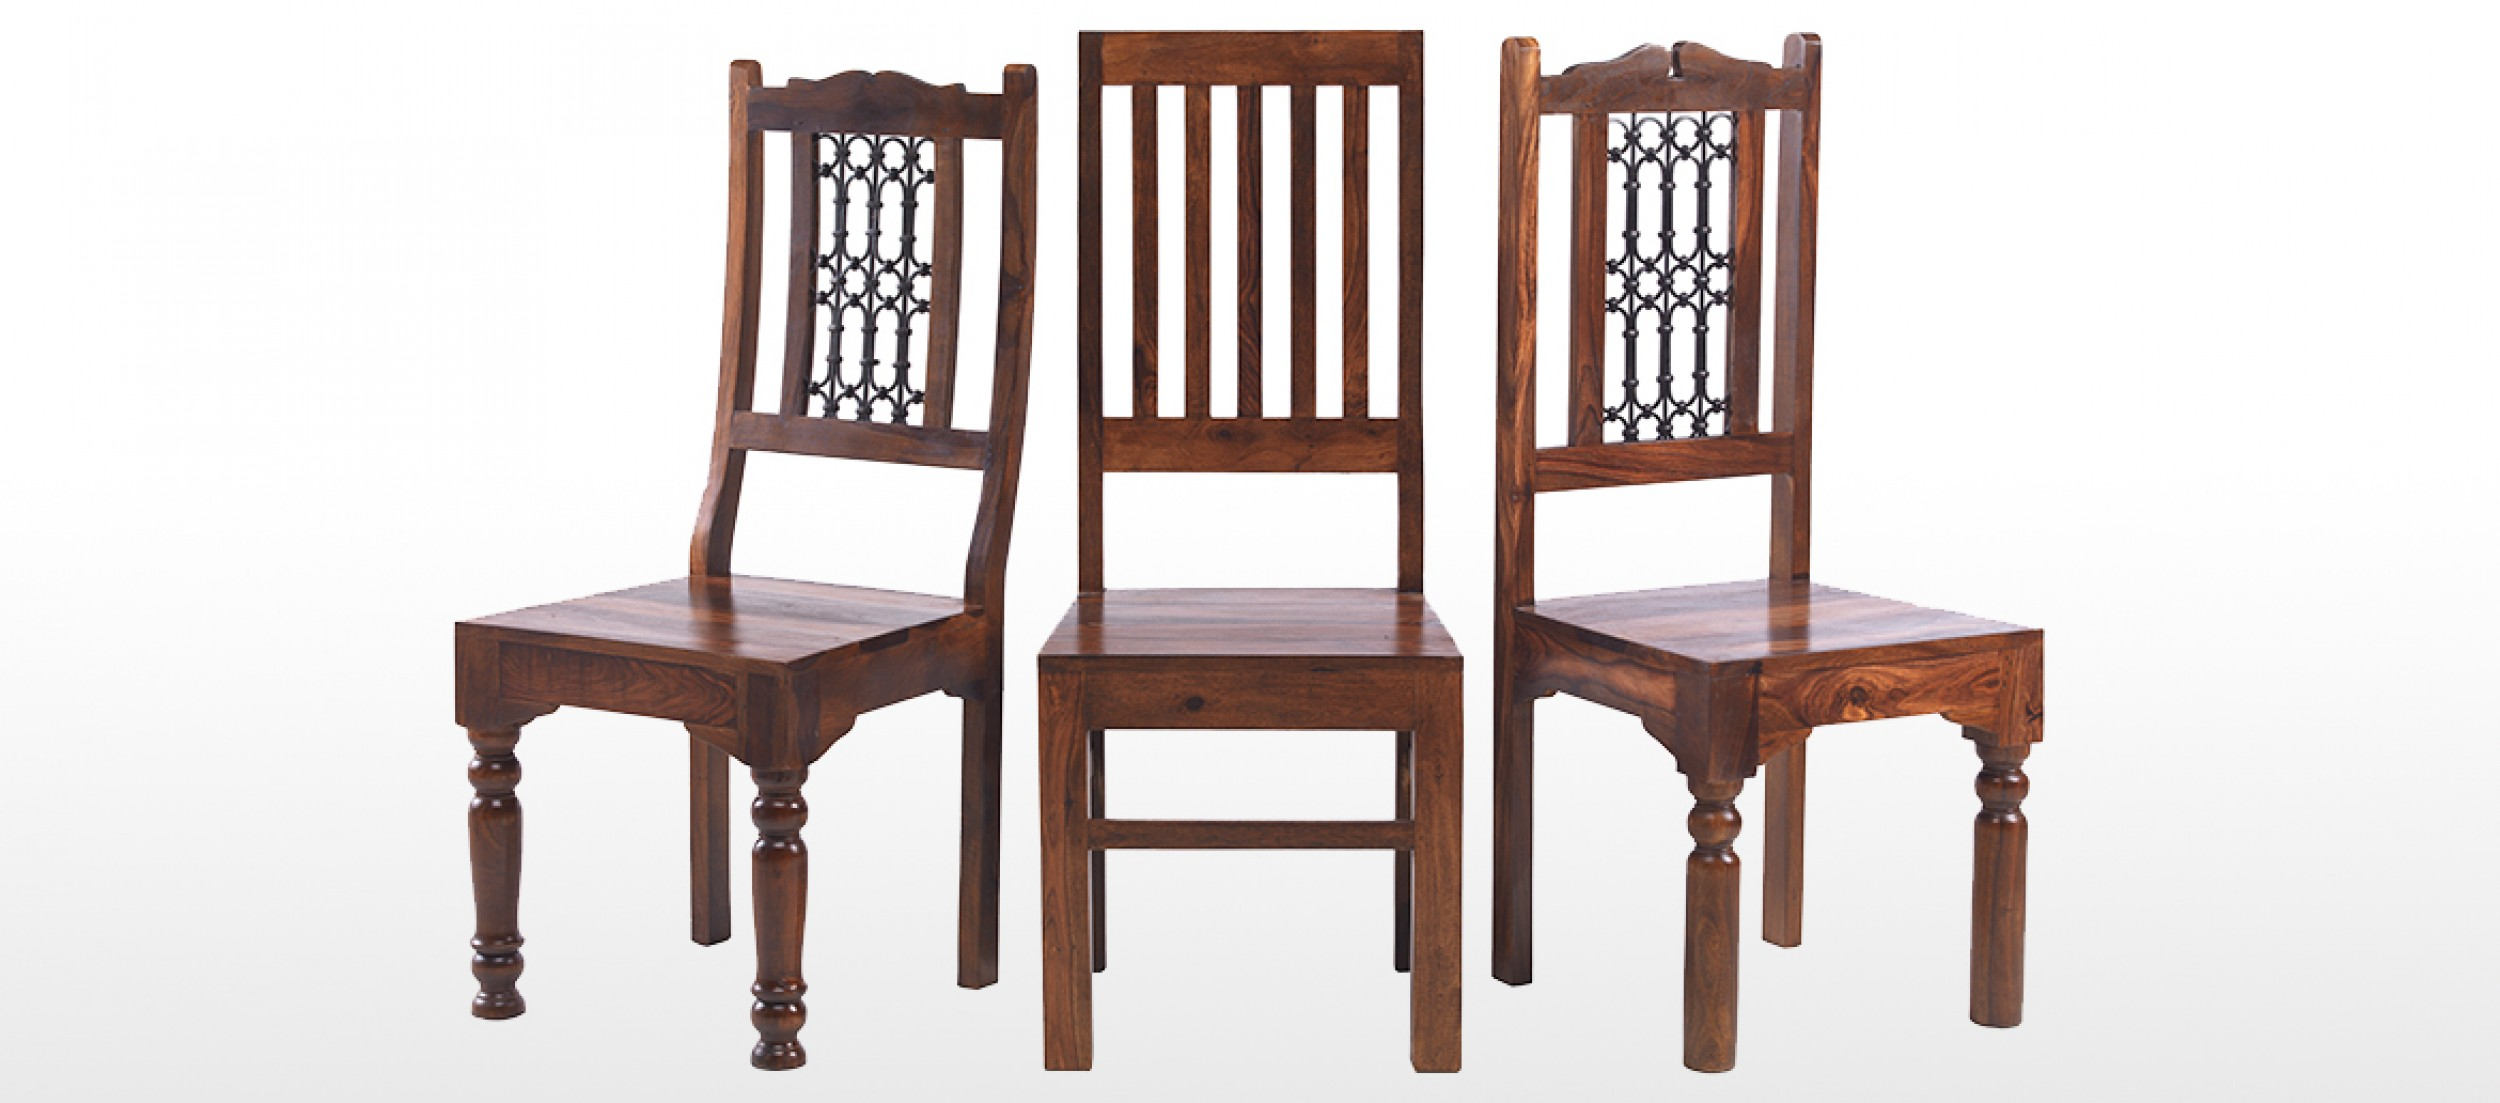 Wooden chair front view - Jali Sheesham 120 Cm Chunky Dining Table And 4 Chairs